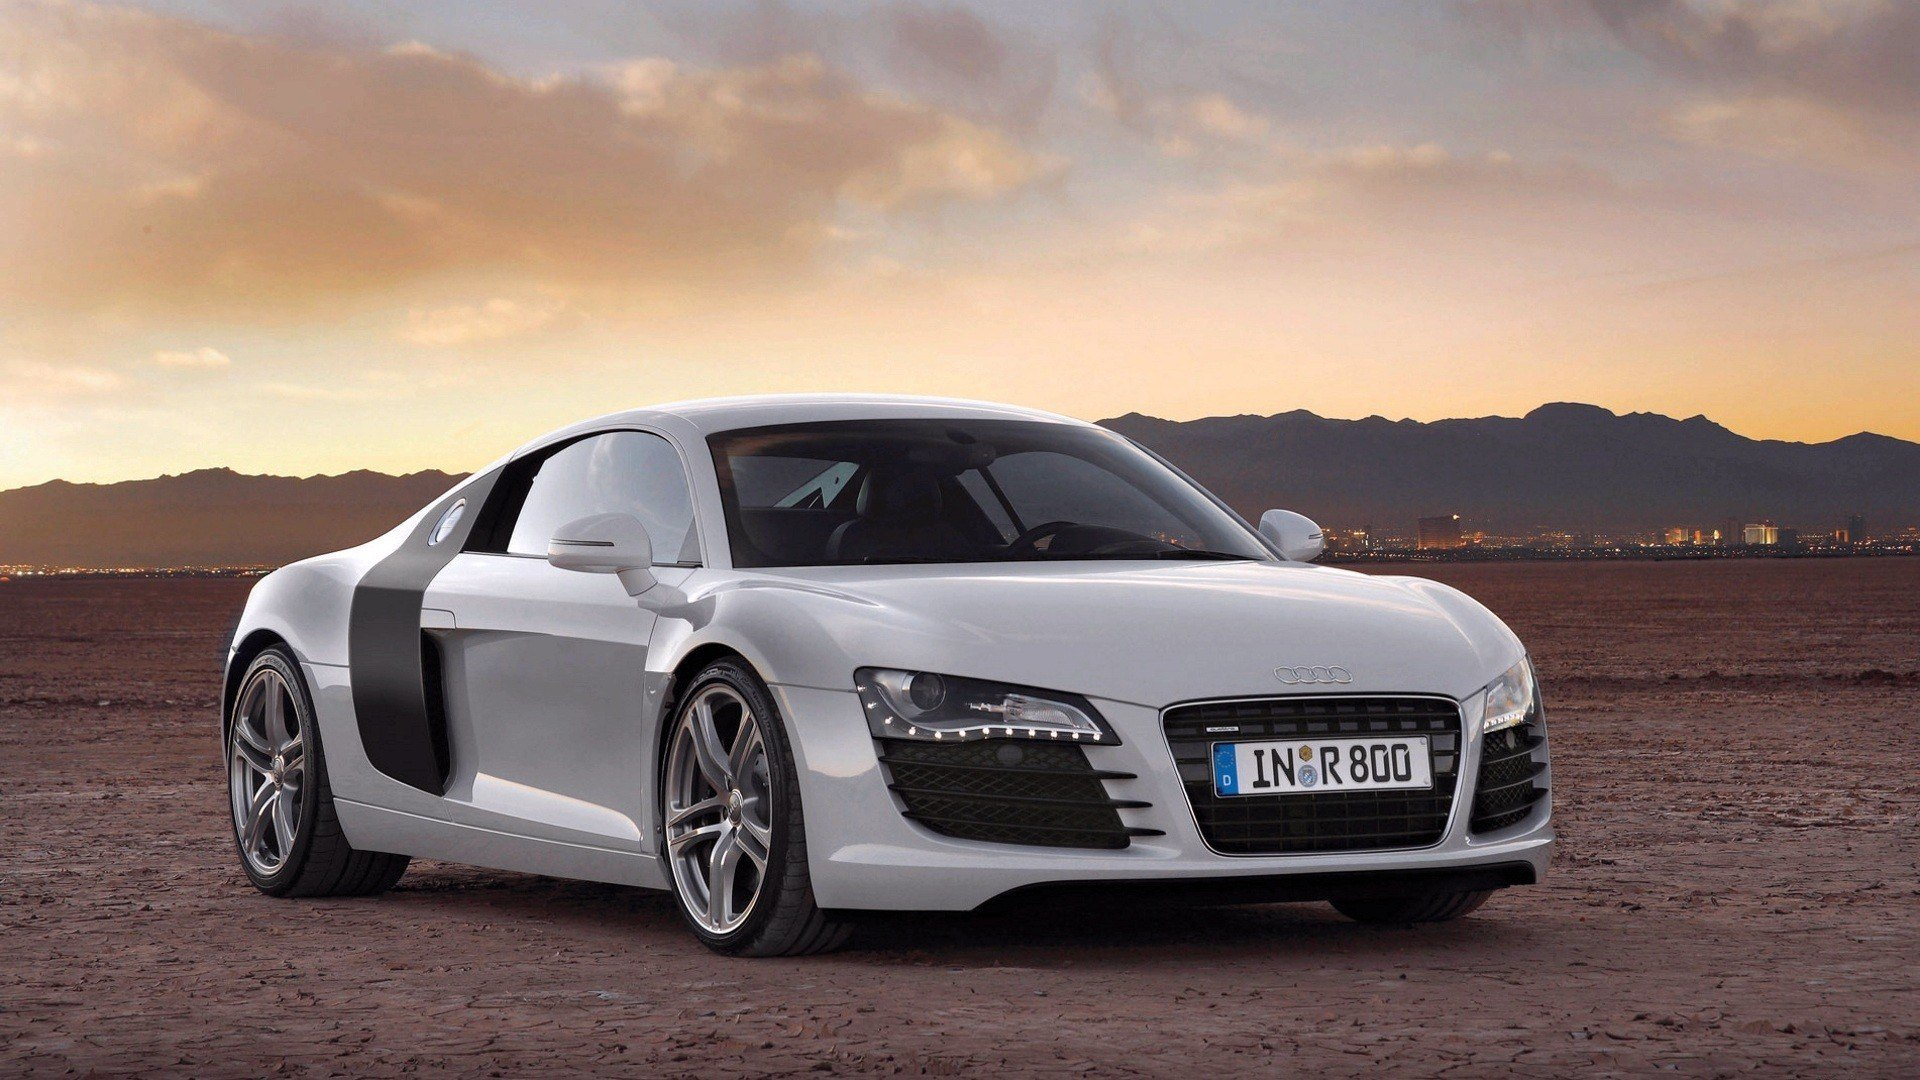 Latest Car Audi R8 Wallpapers Hd Desktop And Mobile Backgrounds Free Download